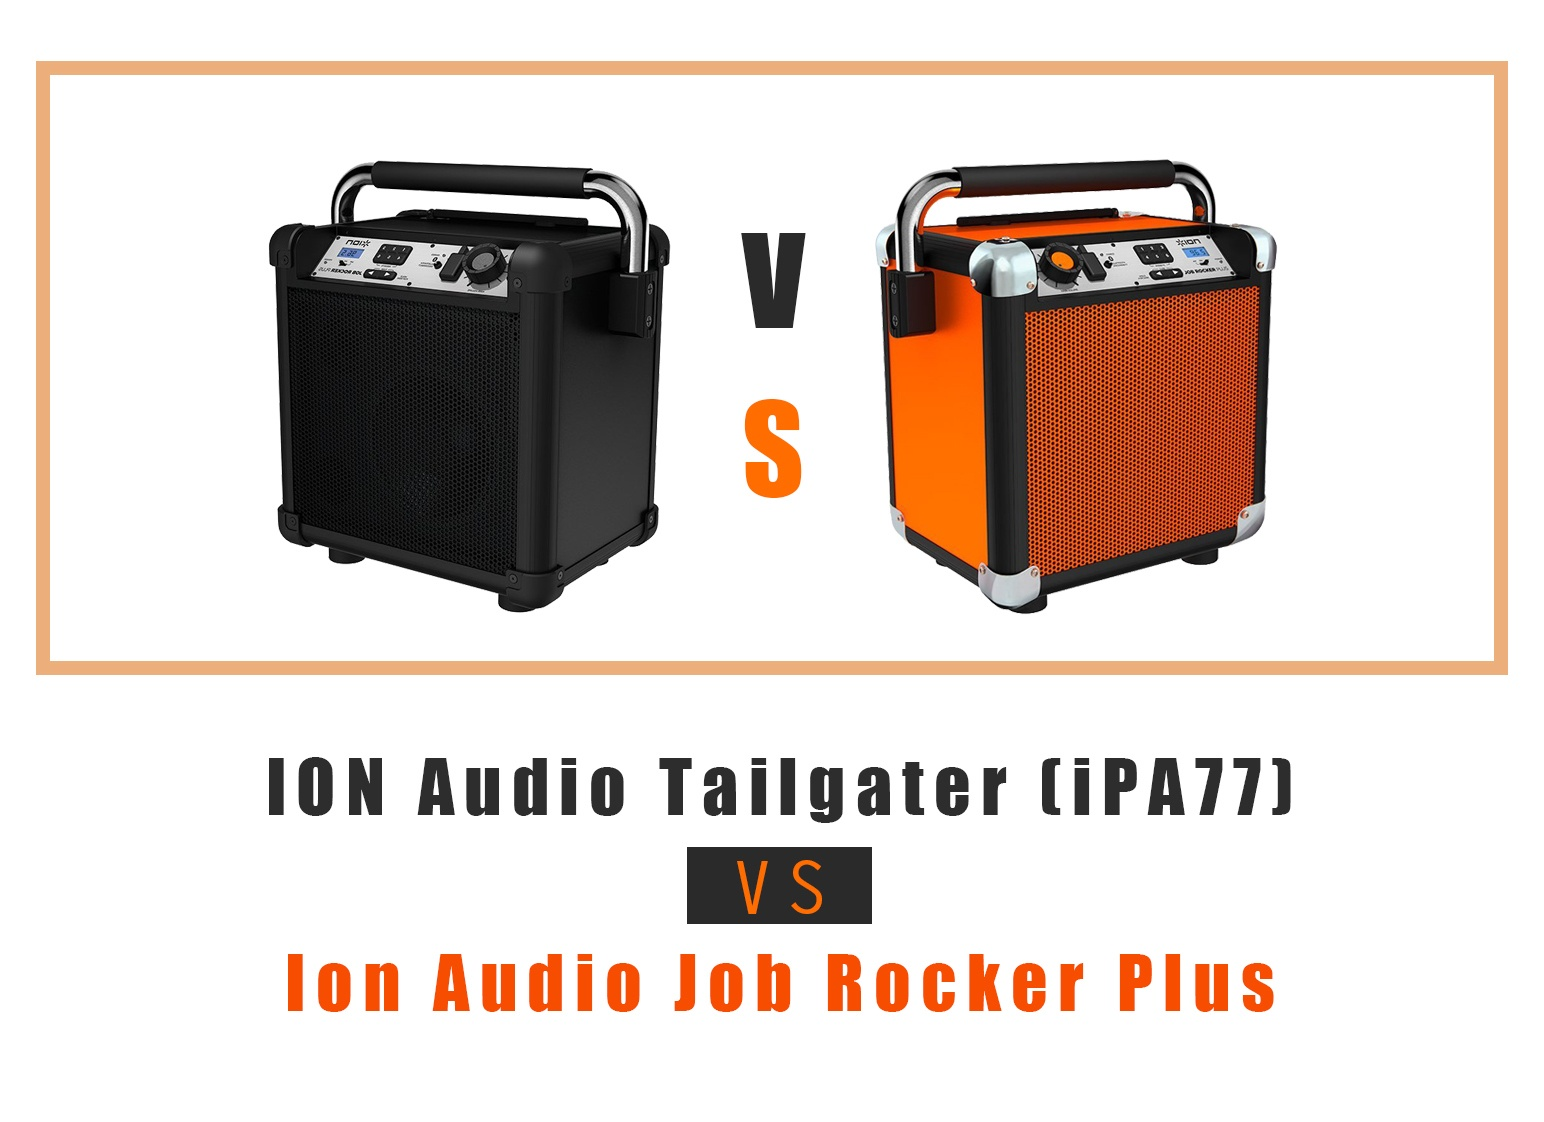 ION Audio Tailgater (iPA77) VS Ion Audio Job Rocker Plus